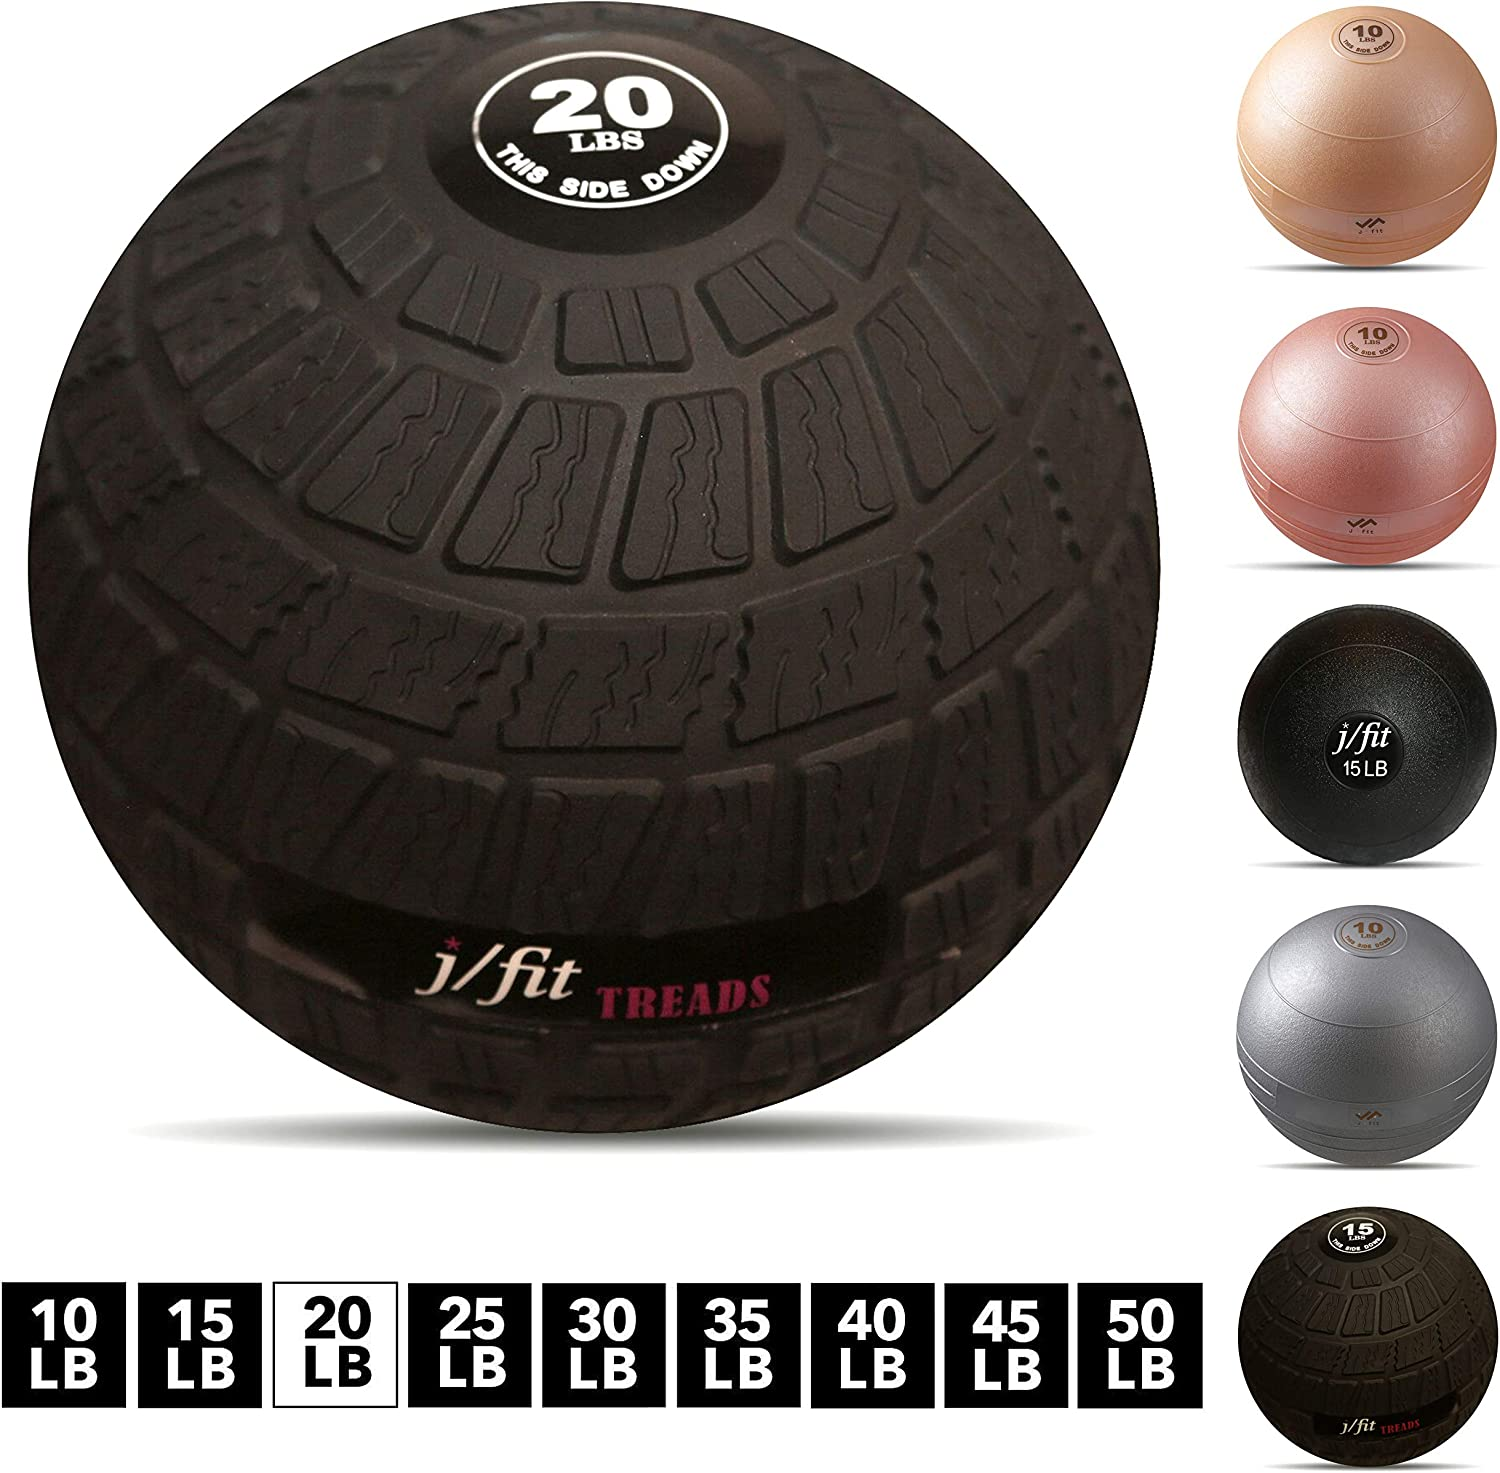 j//fit Dead Weight Slam Ball for Strength /& Conditioning WODs Available in Many Weights and Styles Plyometric and Core Training and Cardio Workouts